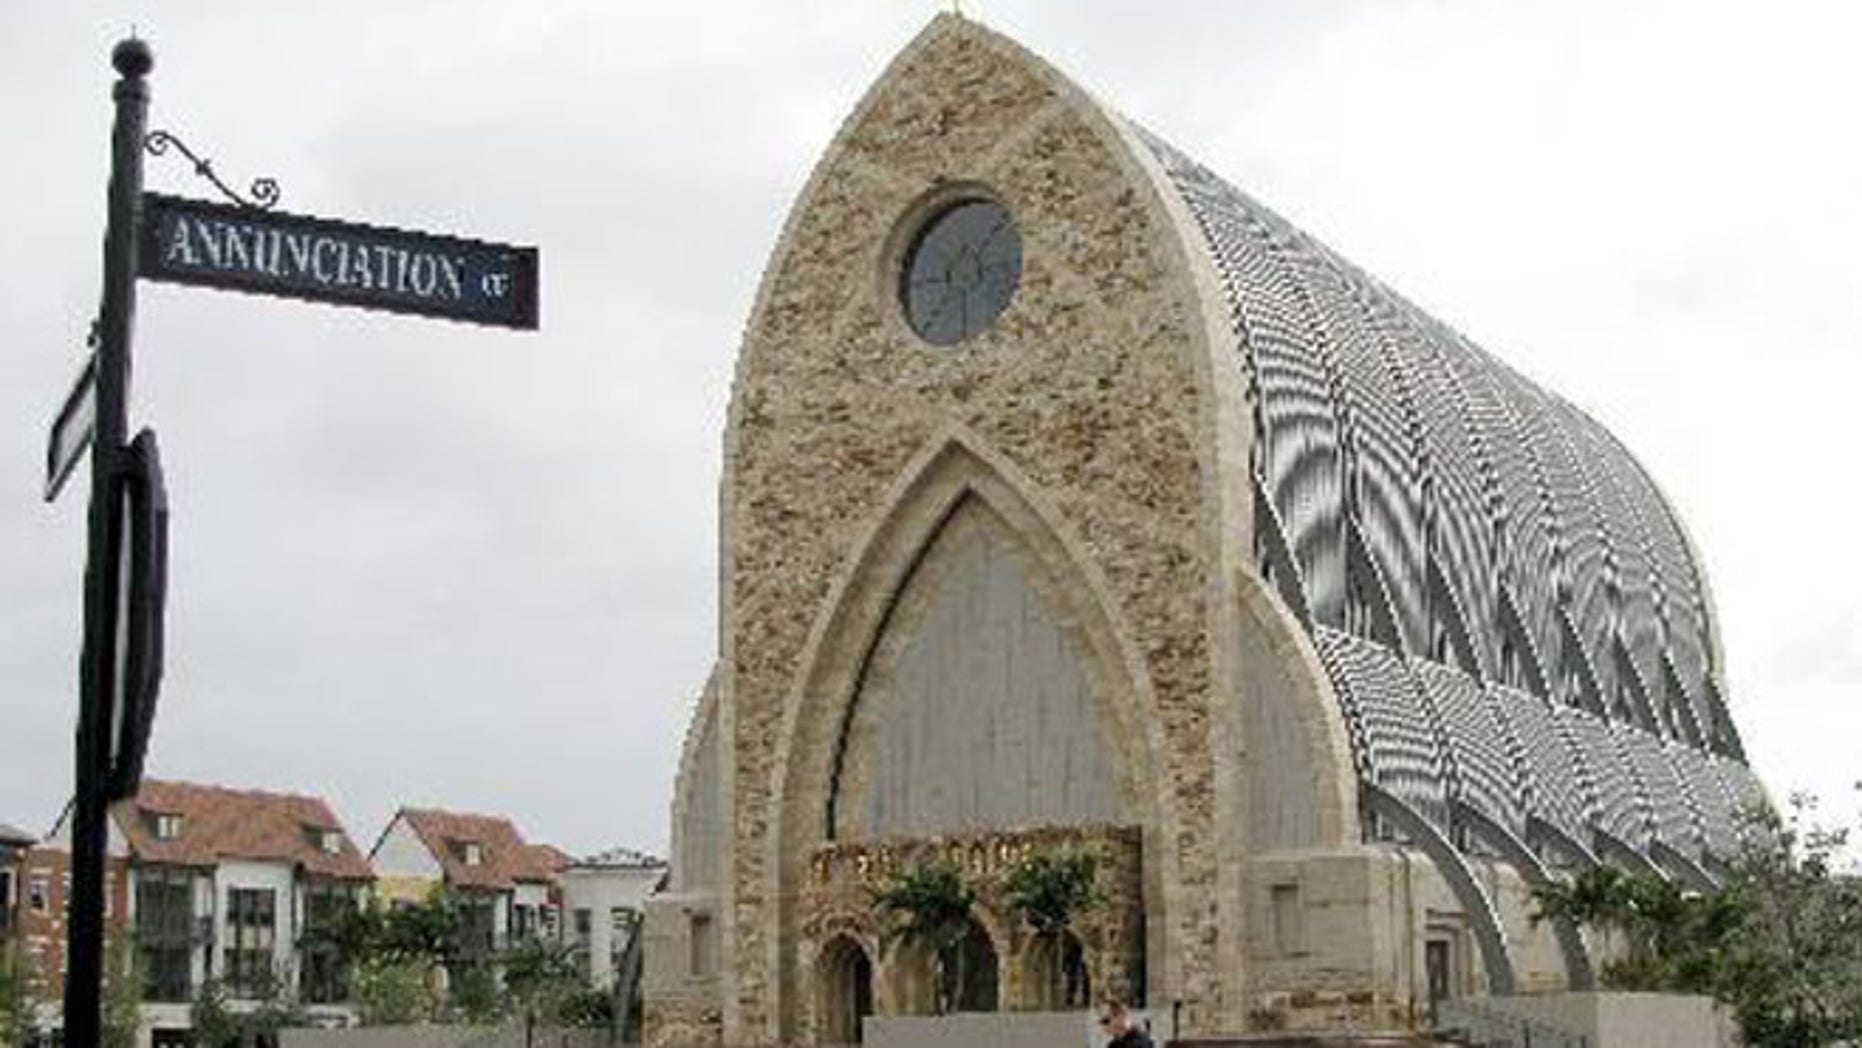 March 4, 2009: The church on the Ave Maria University campus is seen in Immokalee, Fla.